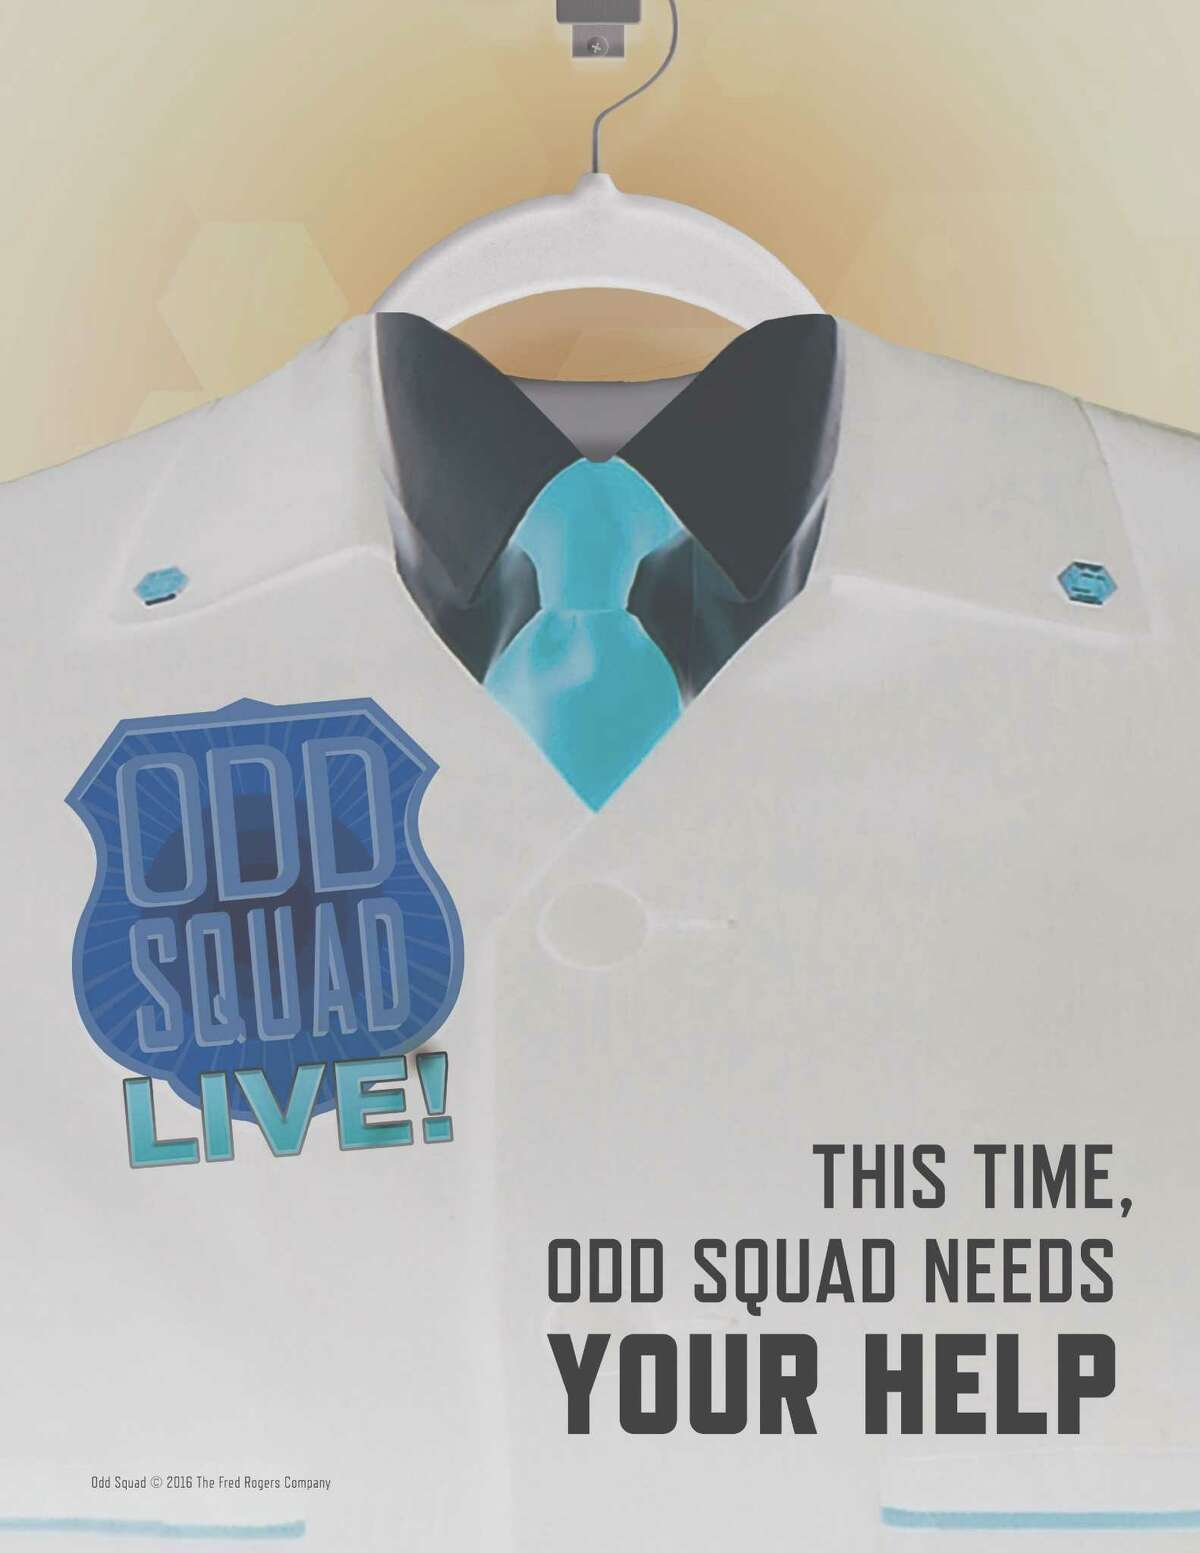 """""""Odd Squad Live!"""" allows fans of the PBS children's series to use their math skills to help solve a case in which villains turn agents Orion and Oleanna into adults. A few kiddoes also will get to come up onstage and use Odd Squad gadgets as they try to figure out a resolution for the case. 6 p.m. Monday, H-E-B Performance Hall, Tobin Center for the Performing Arts, 100 Auditorium Circle. $19.50-$34.50 or $60 for VIP tickets, which include a meet-and-greet. 210-223-8624, tobi.tobincenter.org -- Deborah Martin"""